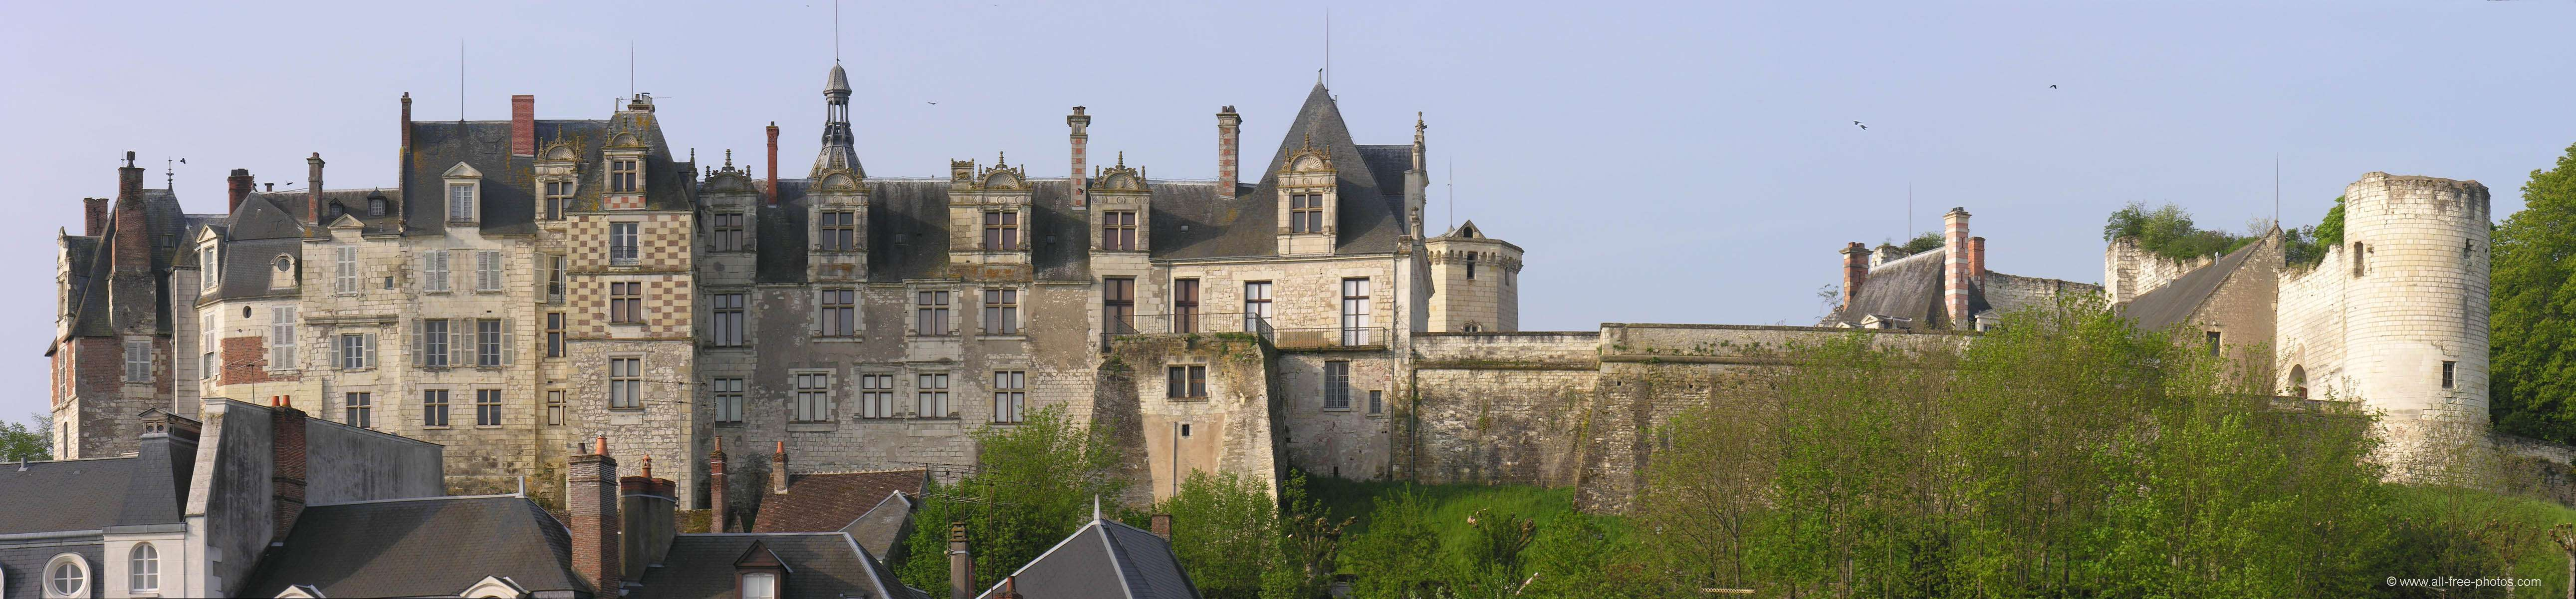 Castle of Saint Aignan sur Cher- France